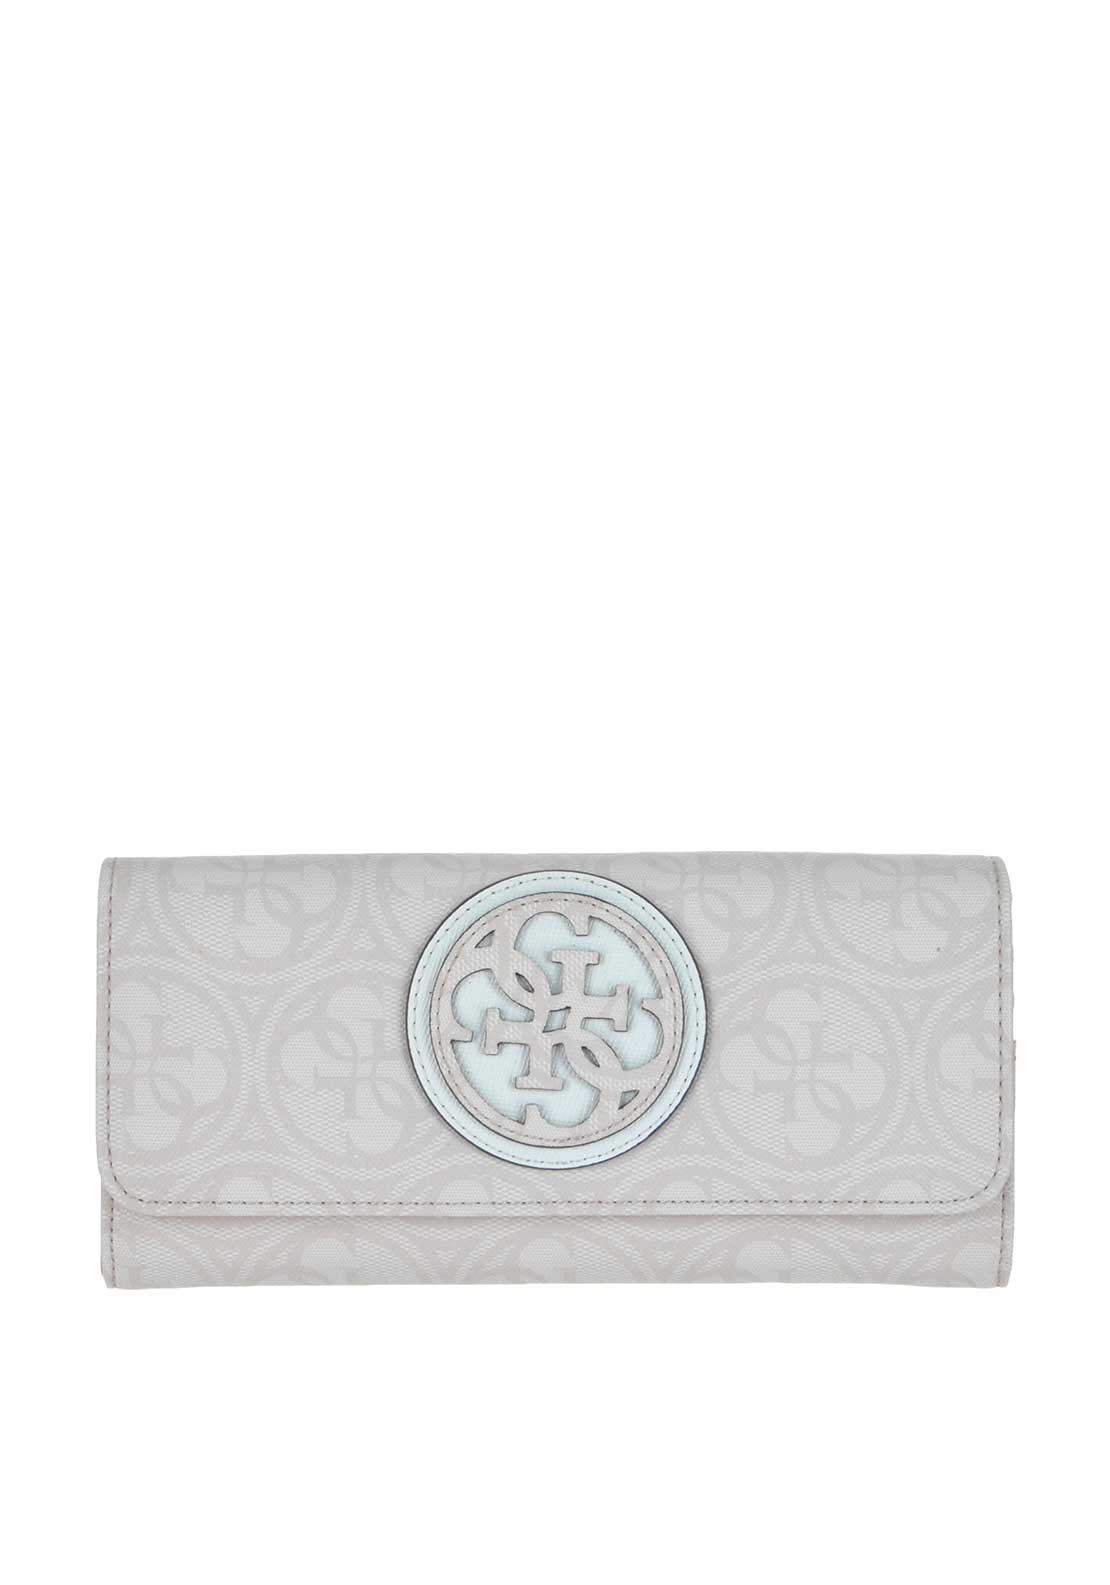 Guess Carly Large Flap Wallet, Pale Gold